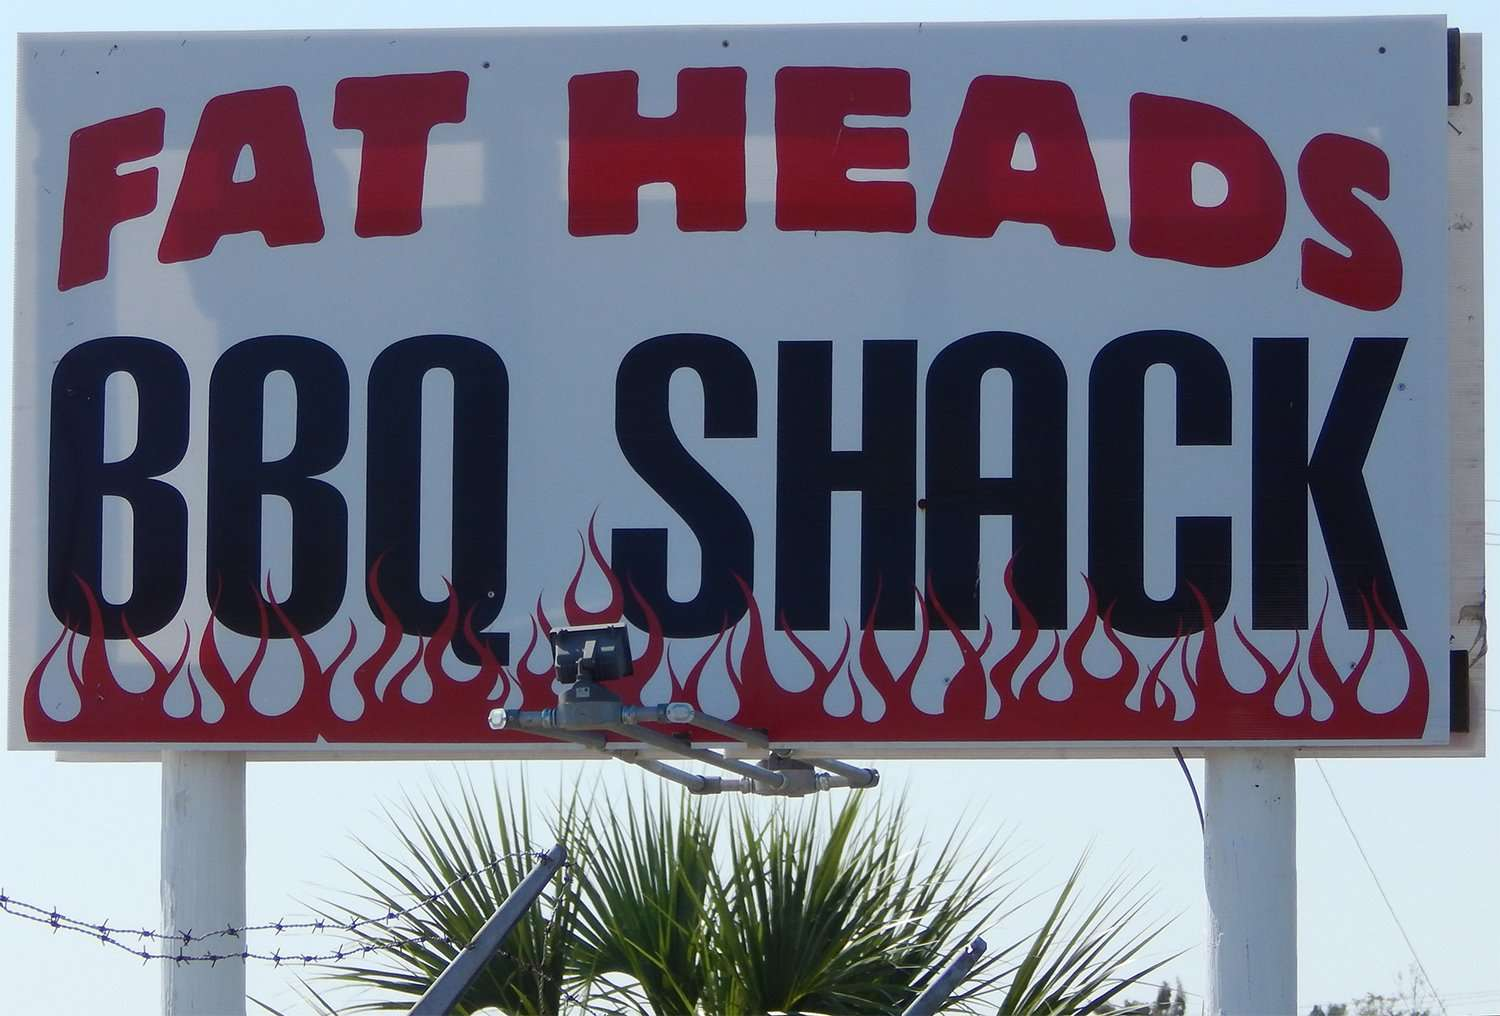 Nov 16, 2014: Street sign of Fat Heads BBQ Shack, the red food truck on 41 in Apollo Beach, FL (credit Staff/photonews247.com)